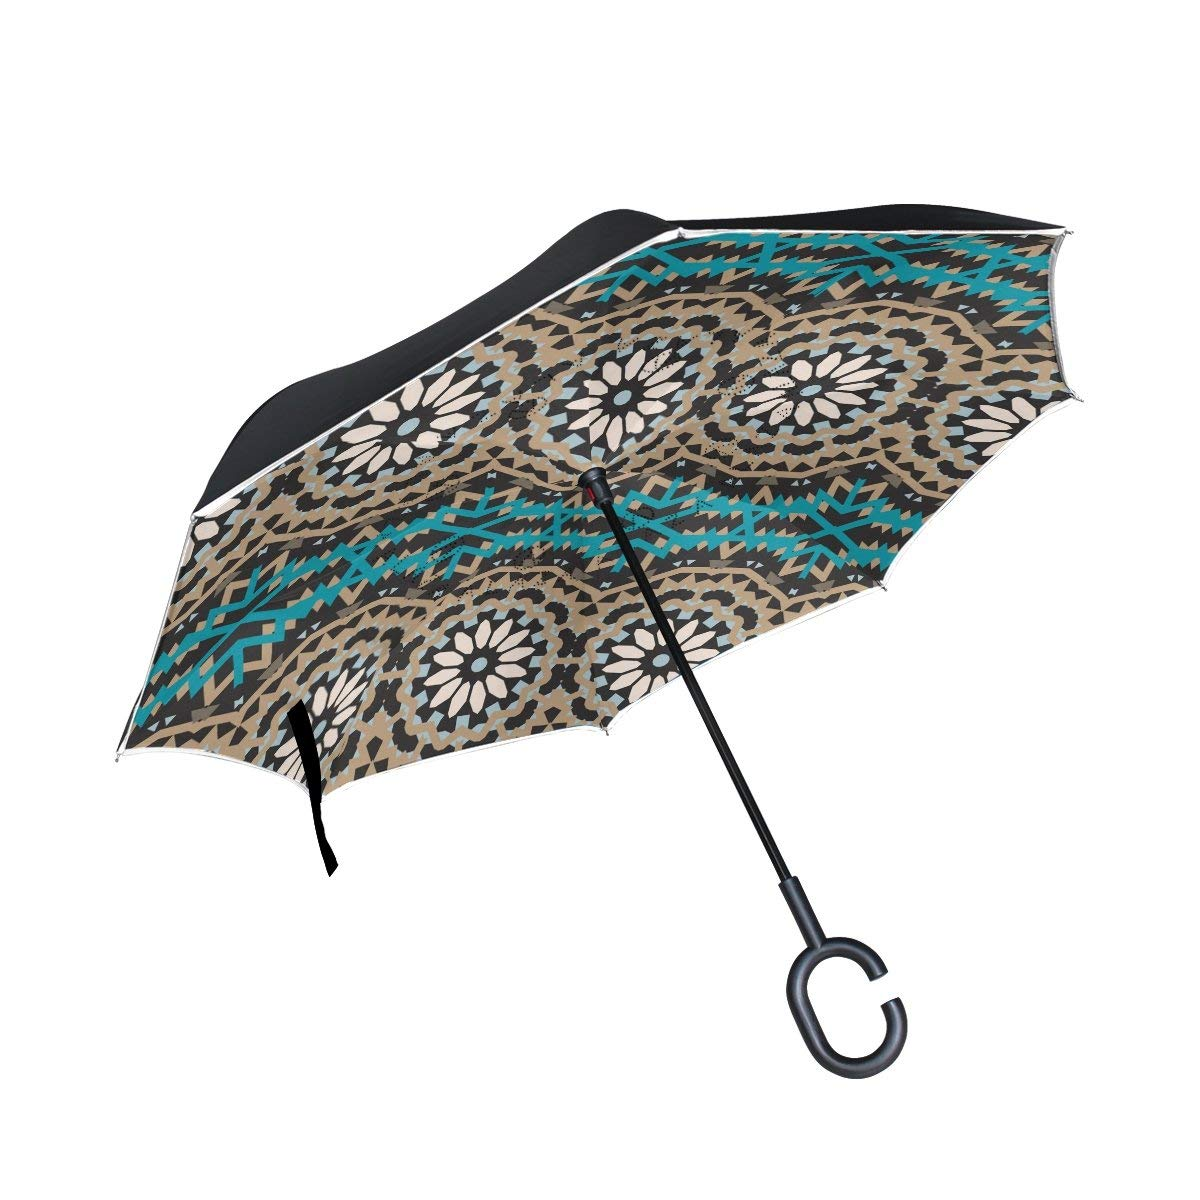 ALAZA Double Layer Inverted Reverse Umbrella Colorful Bohemian Windproof Car Rain C-shapped Handle Automatic